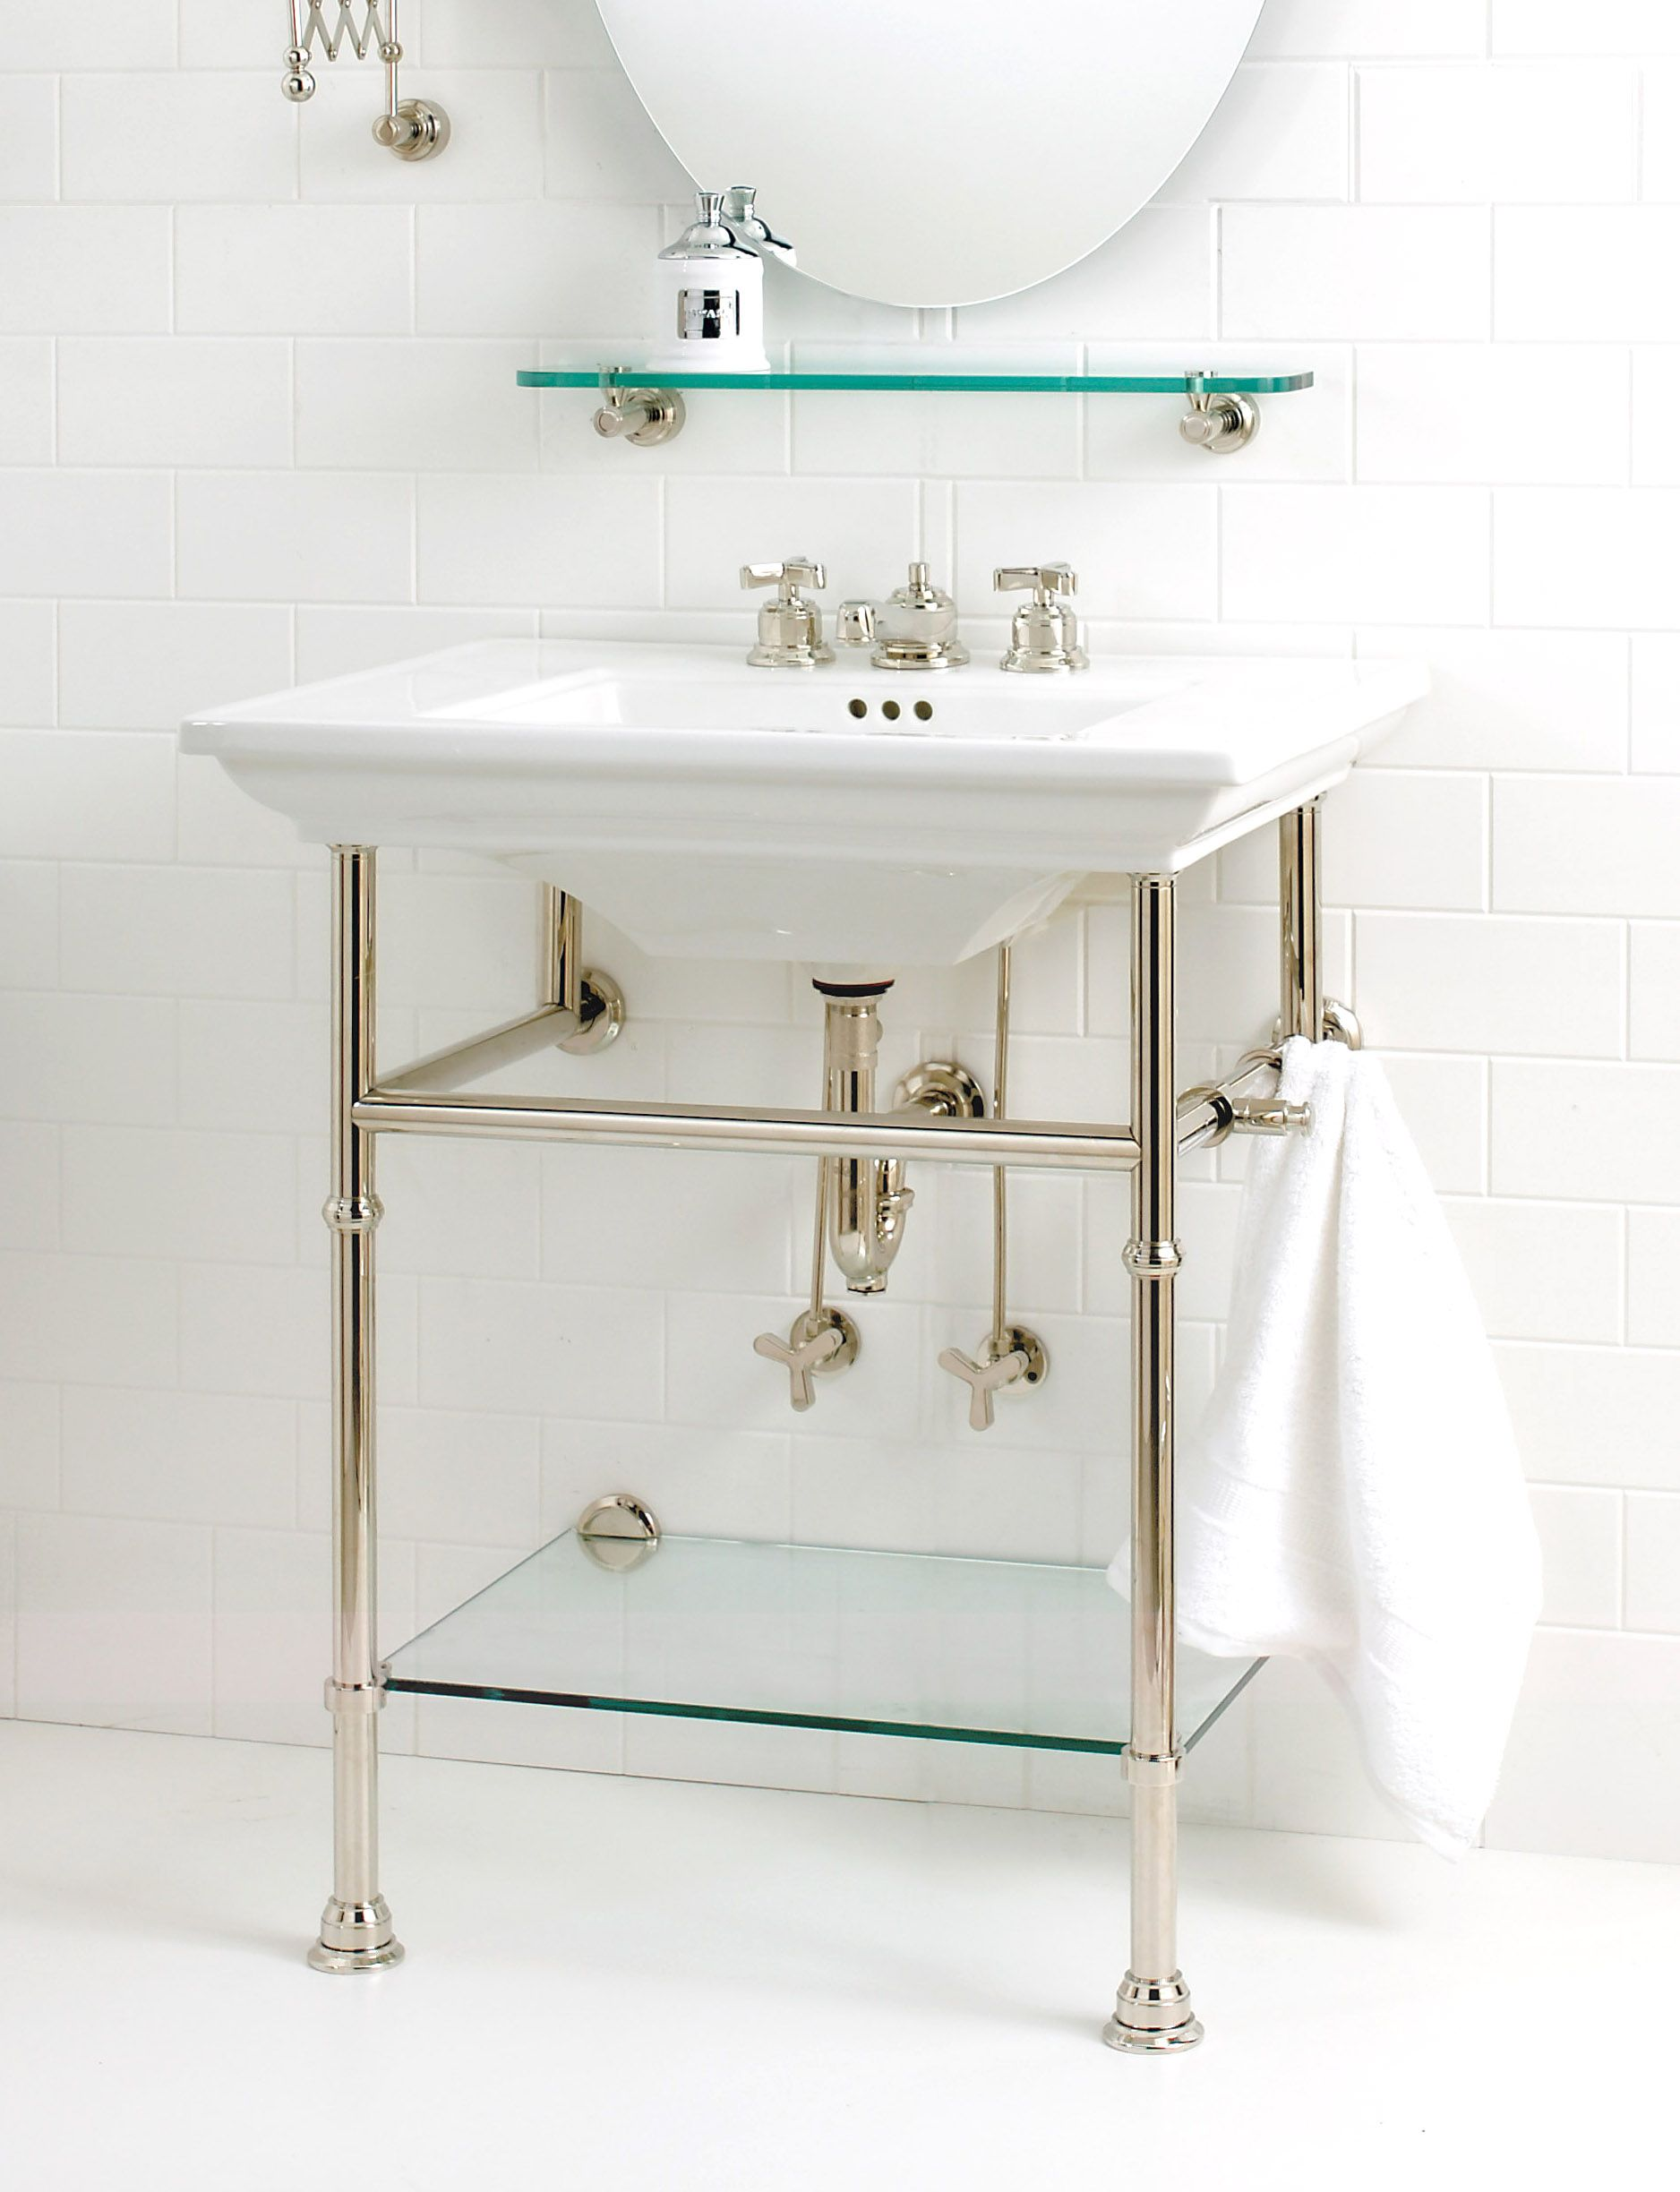 Watermark bathroom accessories - Bath Console By Watermark Designs